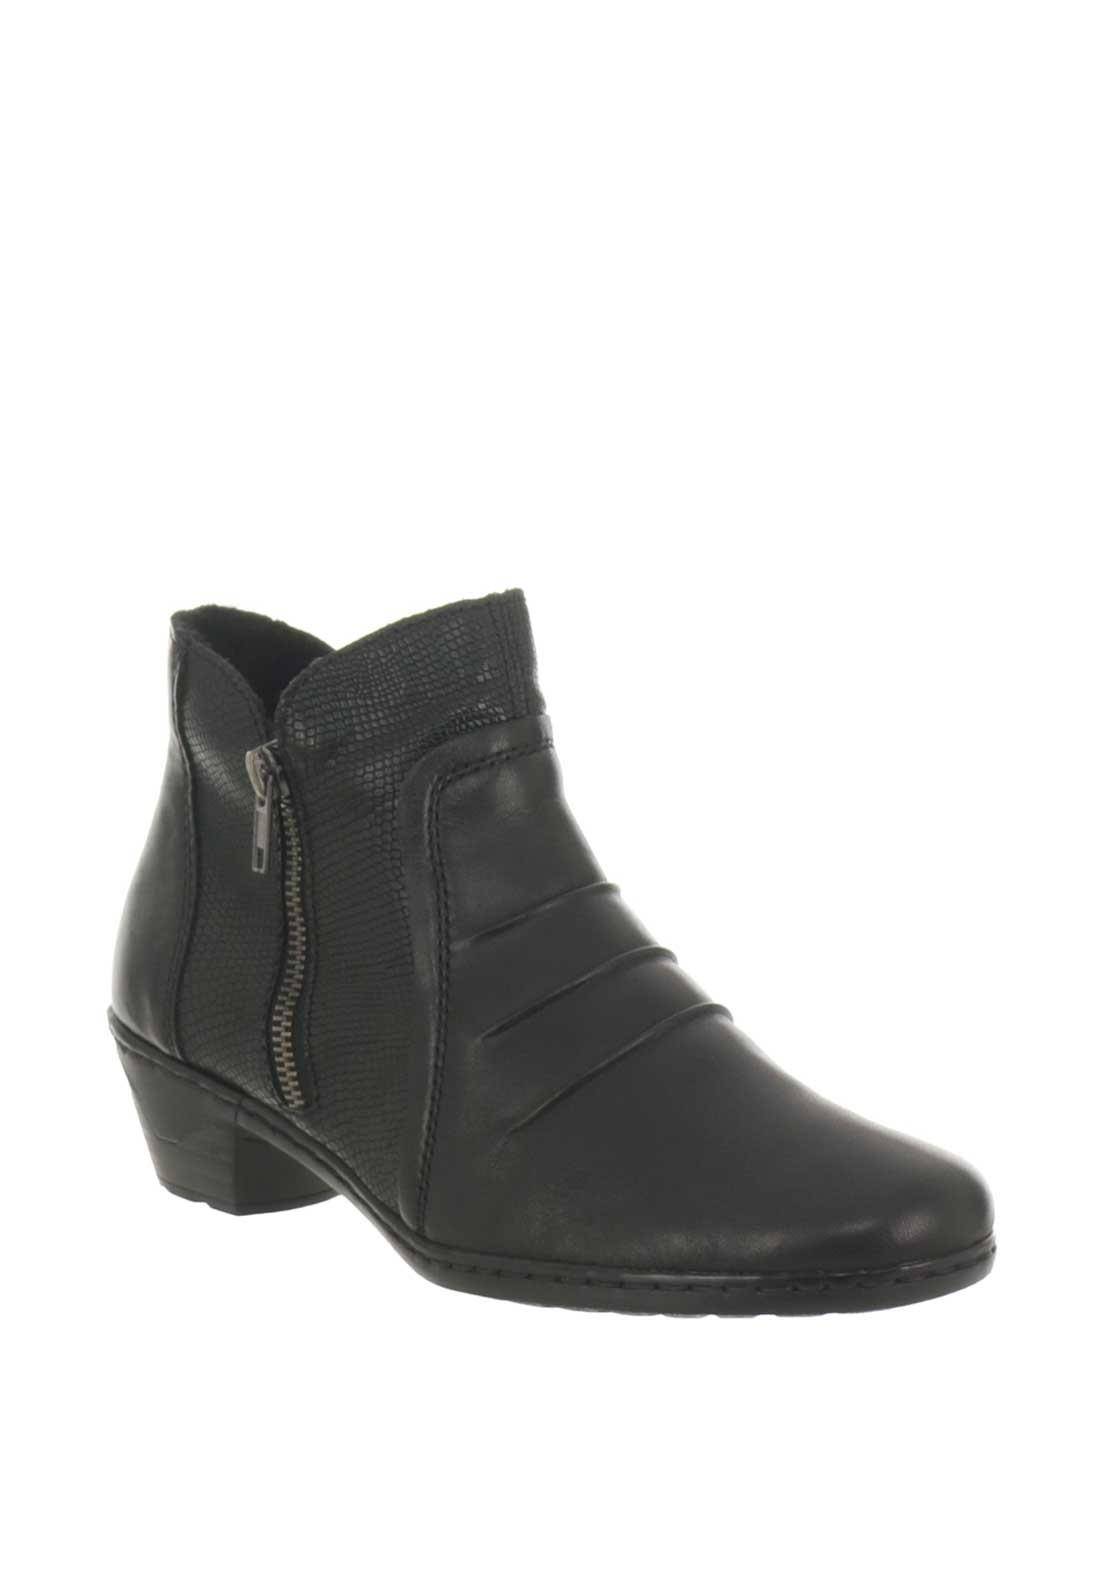 c66043c434f Rieker Womens Leather Ruched Ankle Boots, Black | McElhinneys